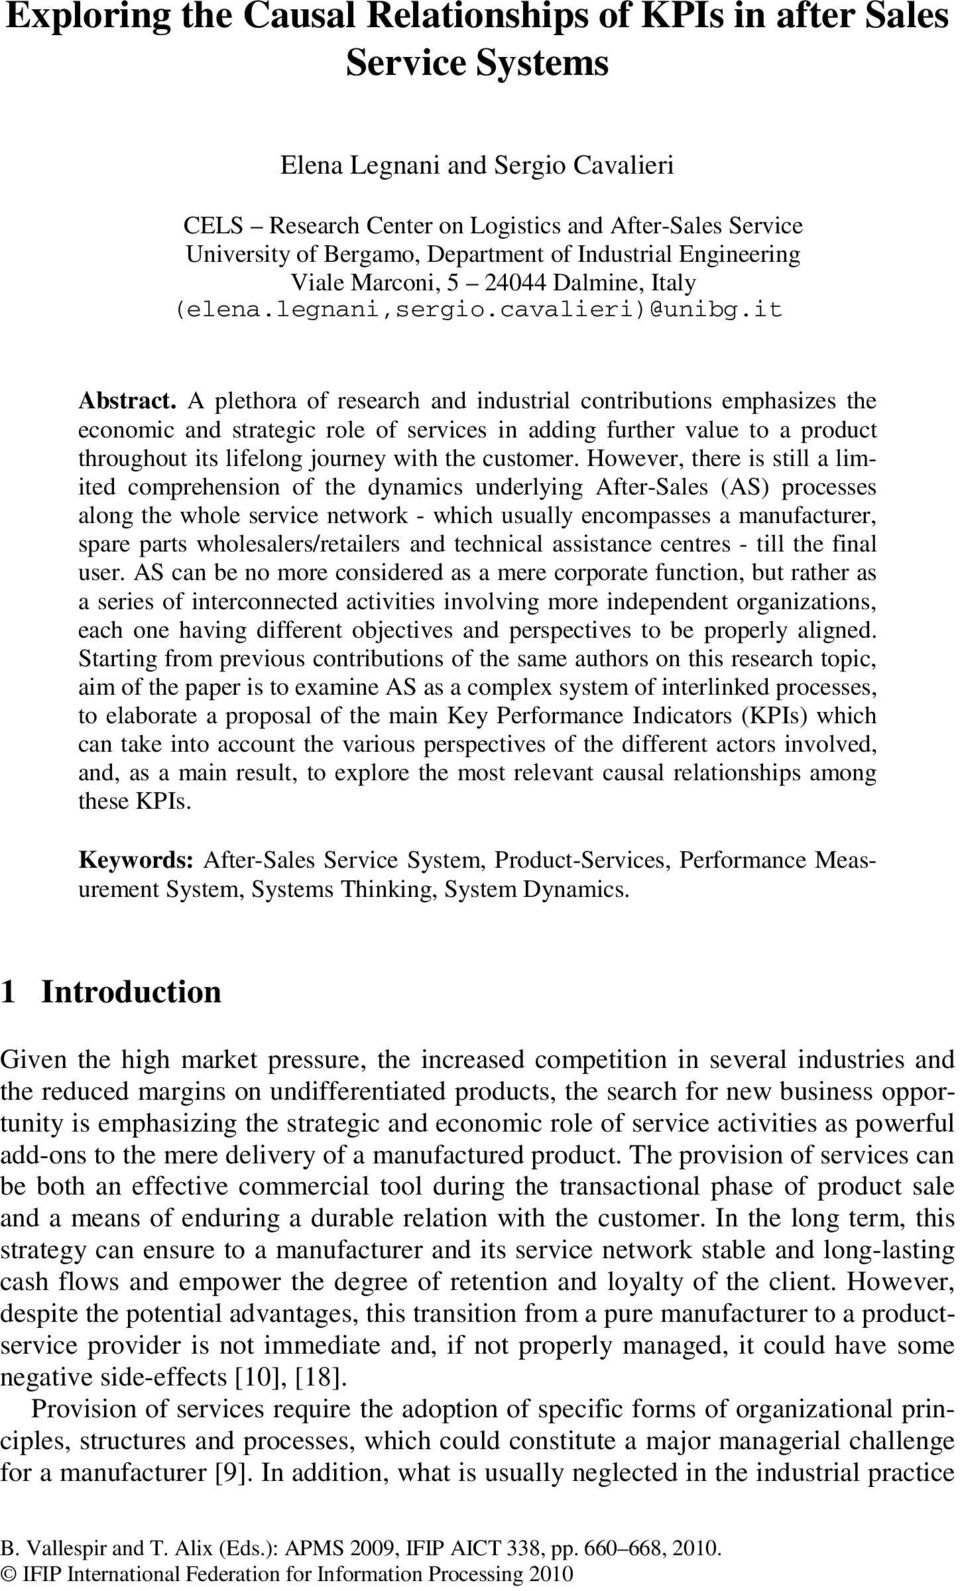 Research paper on after sales services